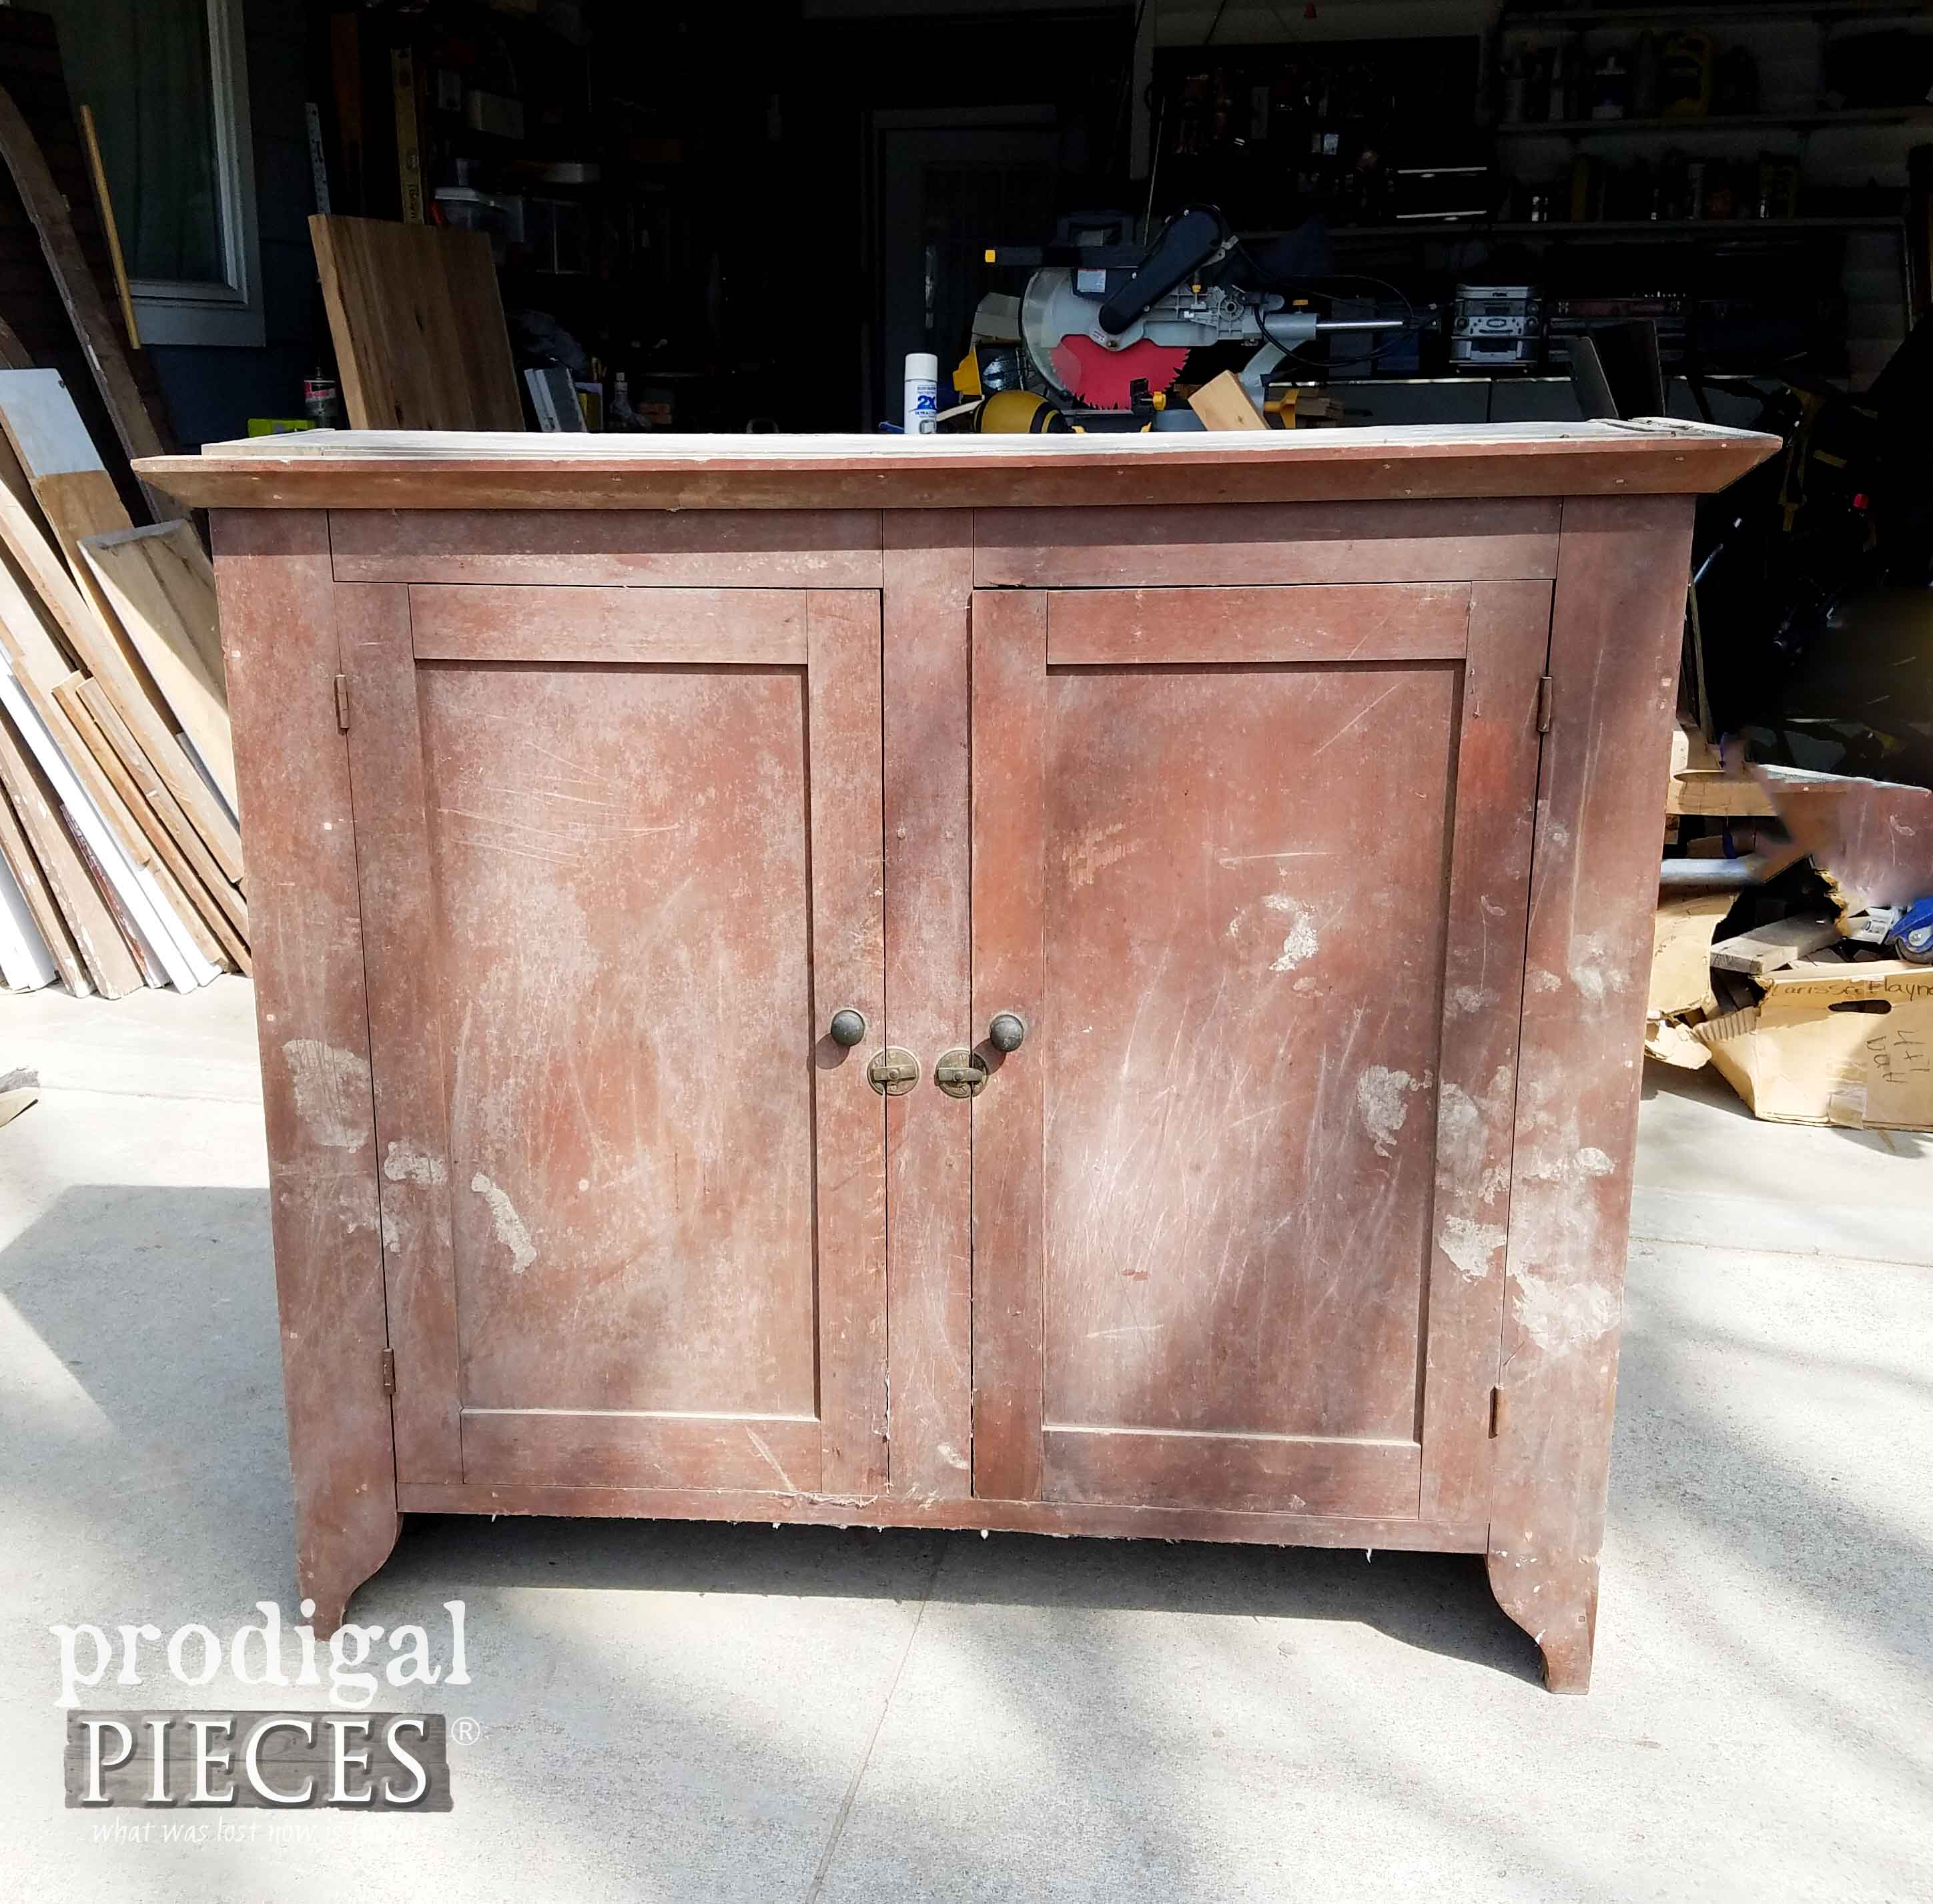 Antique Hutch Before | Prodigal Pieces | prodigalpieces.com